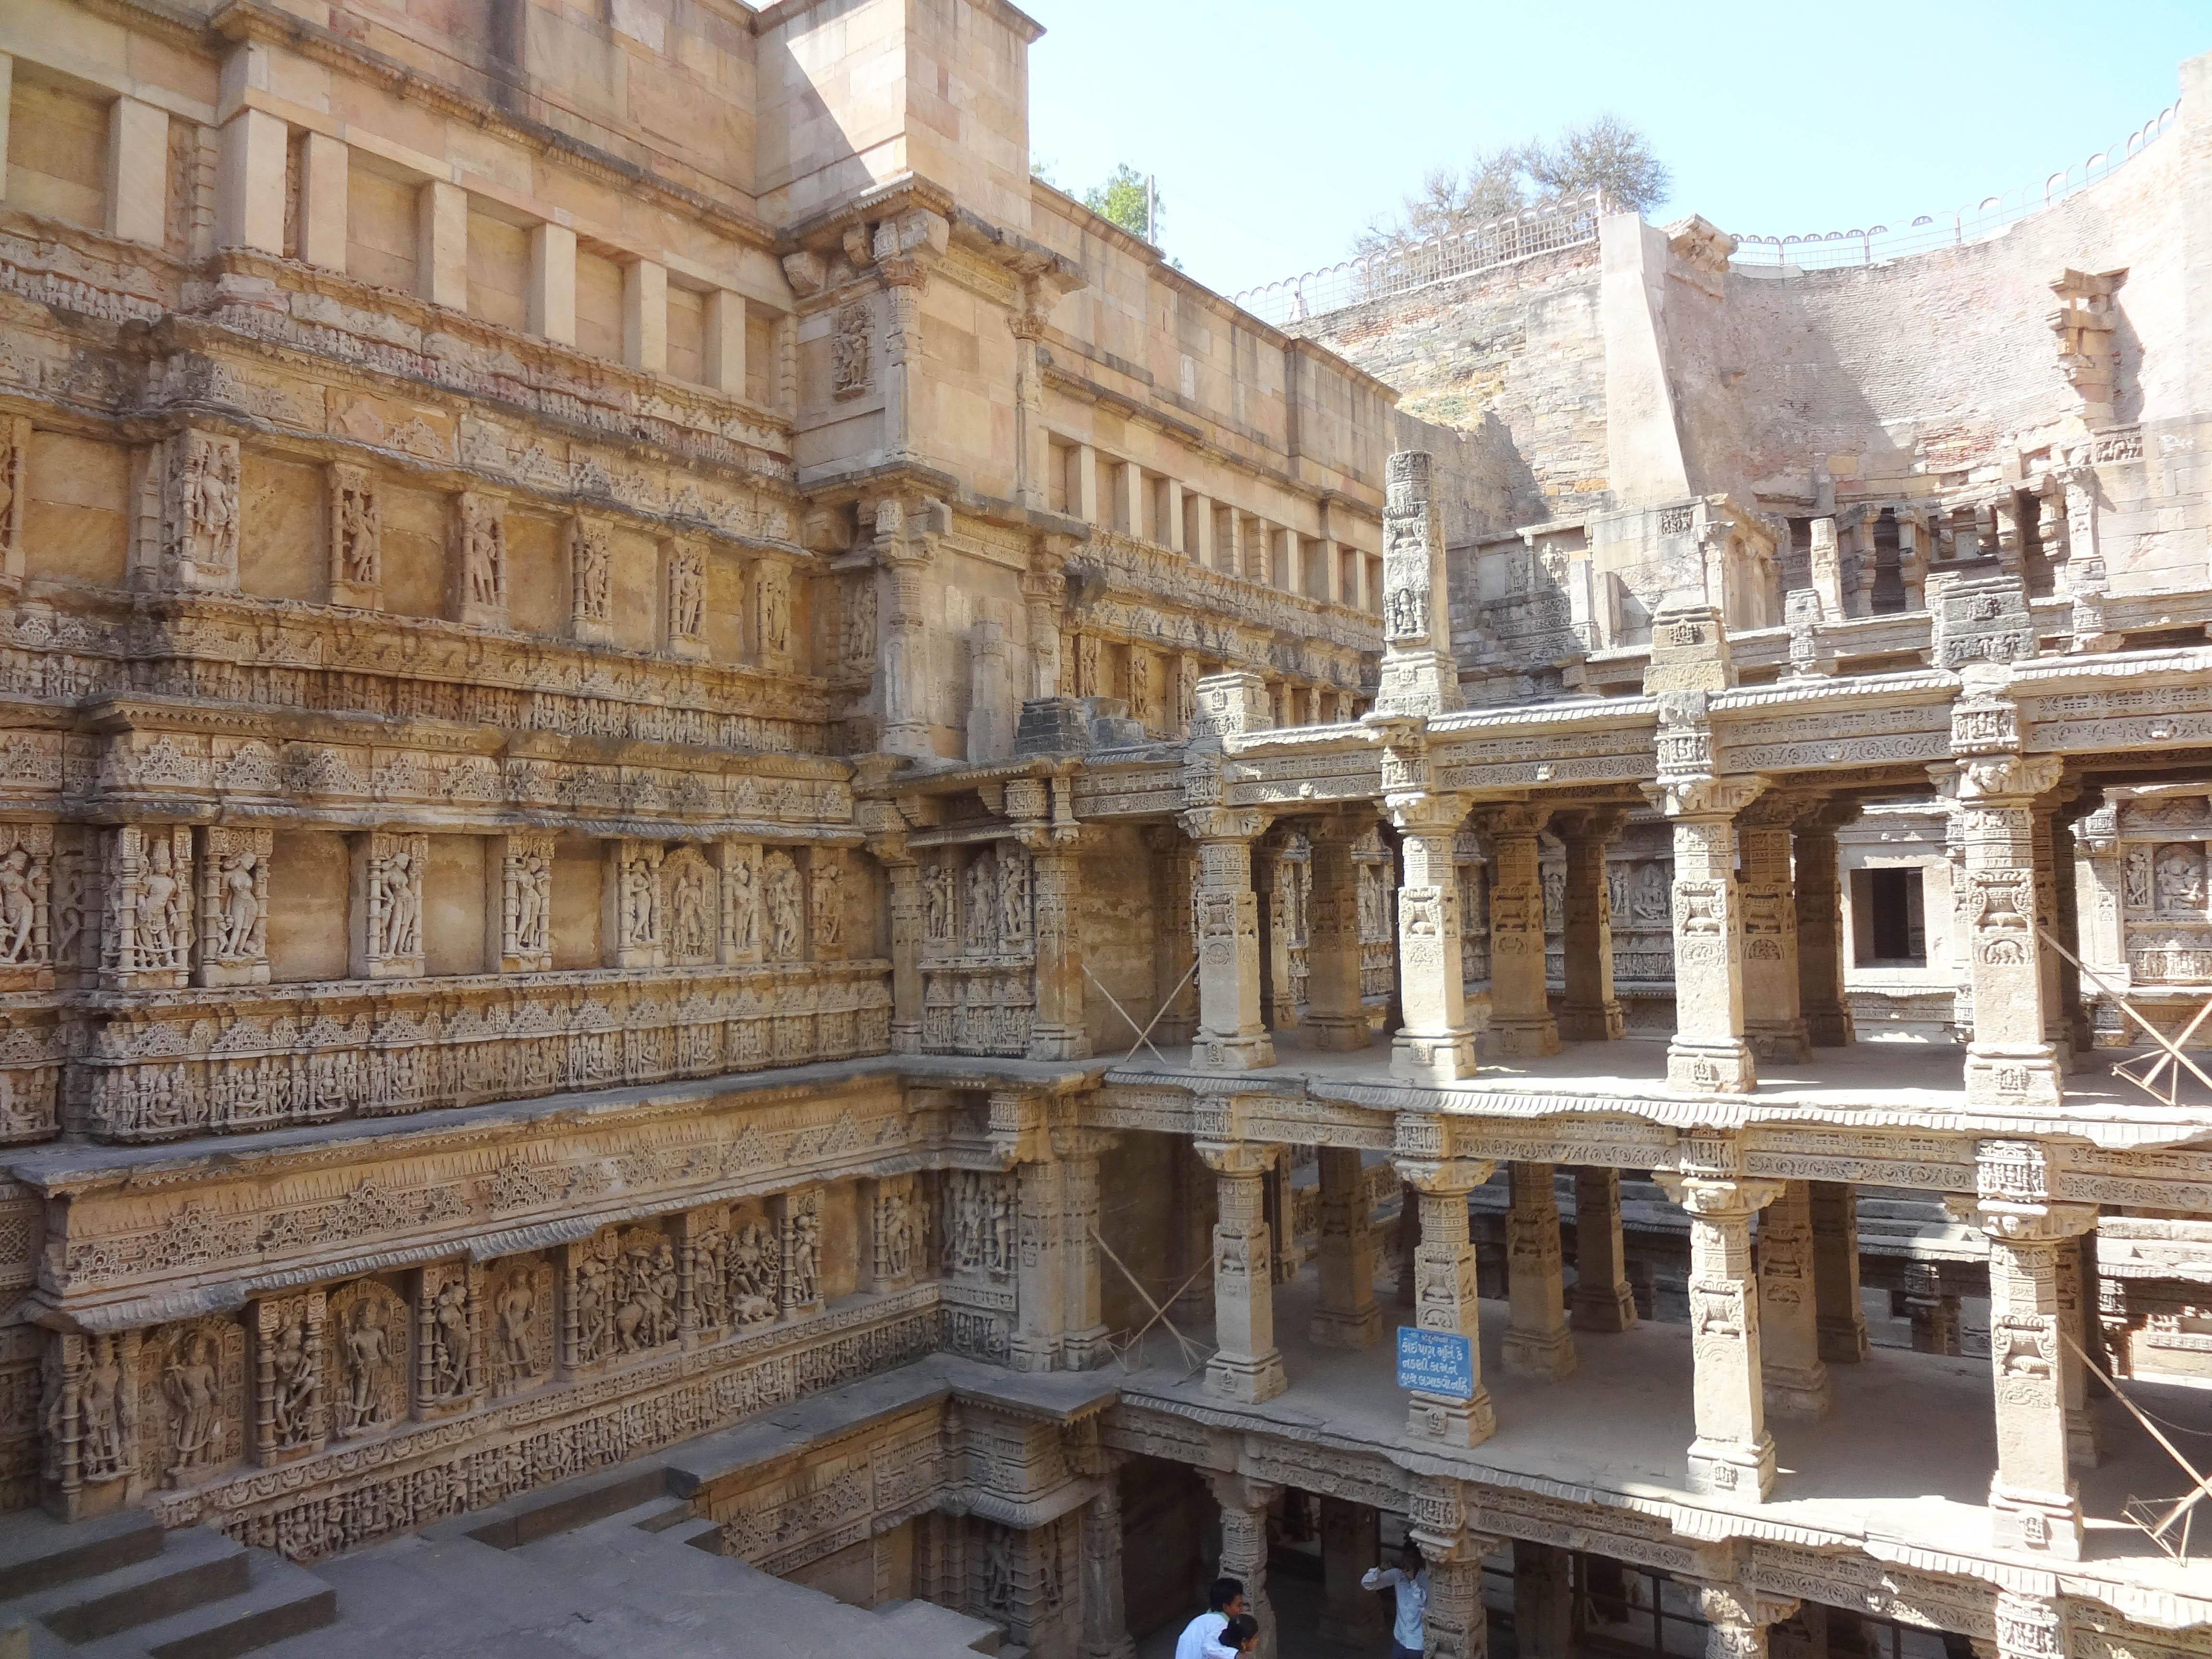 Rani ki vav (The Queen's Well) is now a UNESCO World Heritage Site. (Courtesy of Victoria Lautman)